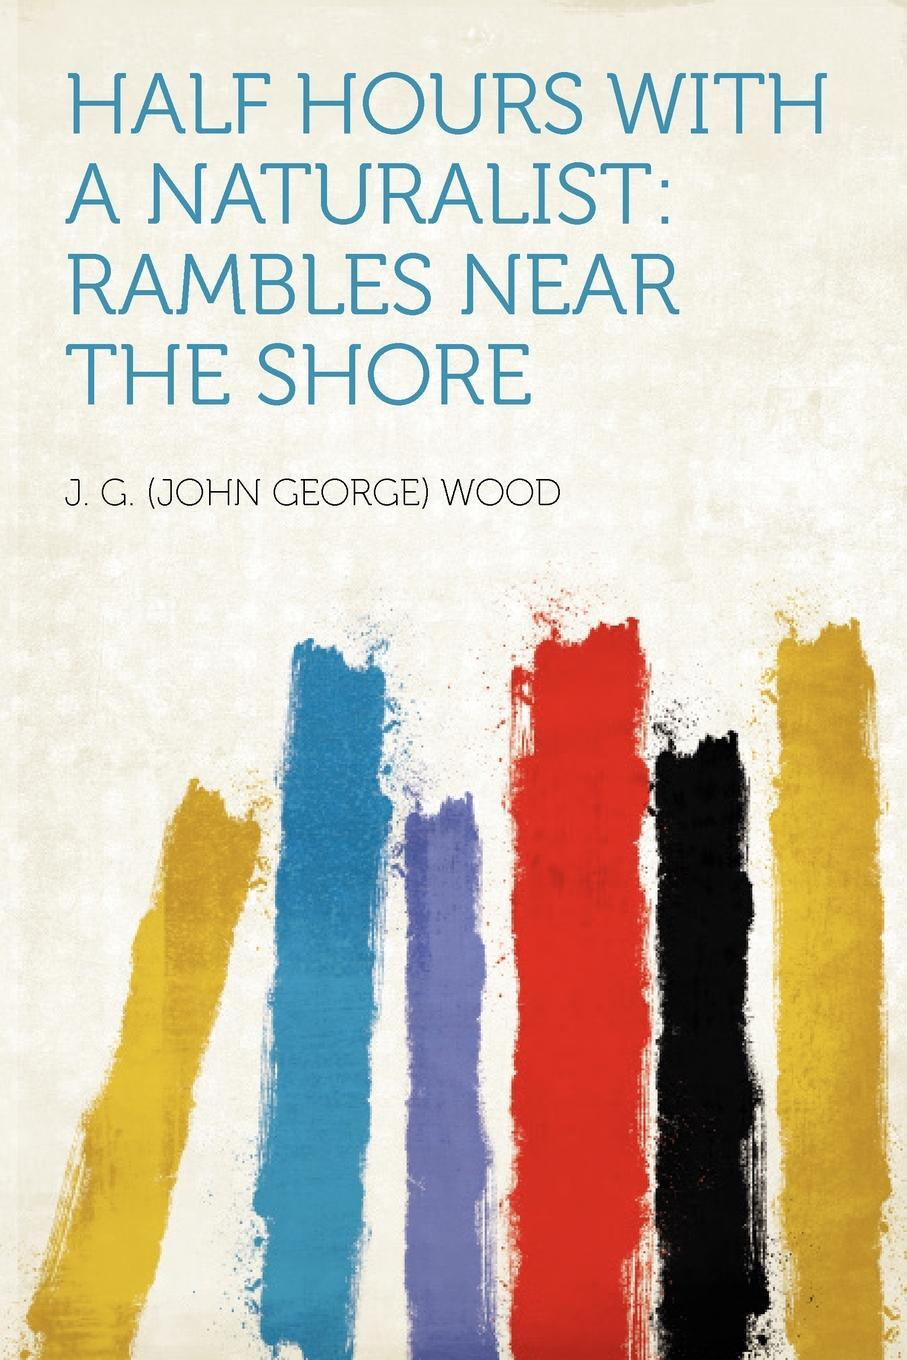 Half Hours With a Naturalist. Rambles Near the Shore. J. G. (John George) Wood